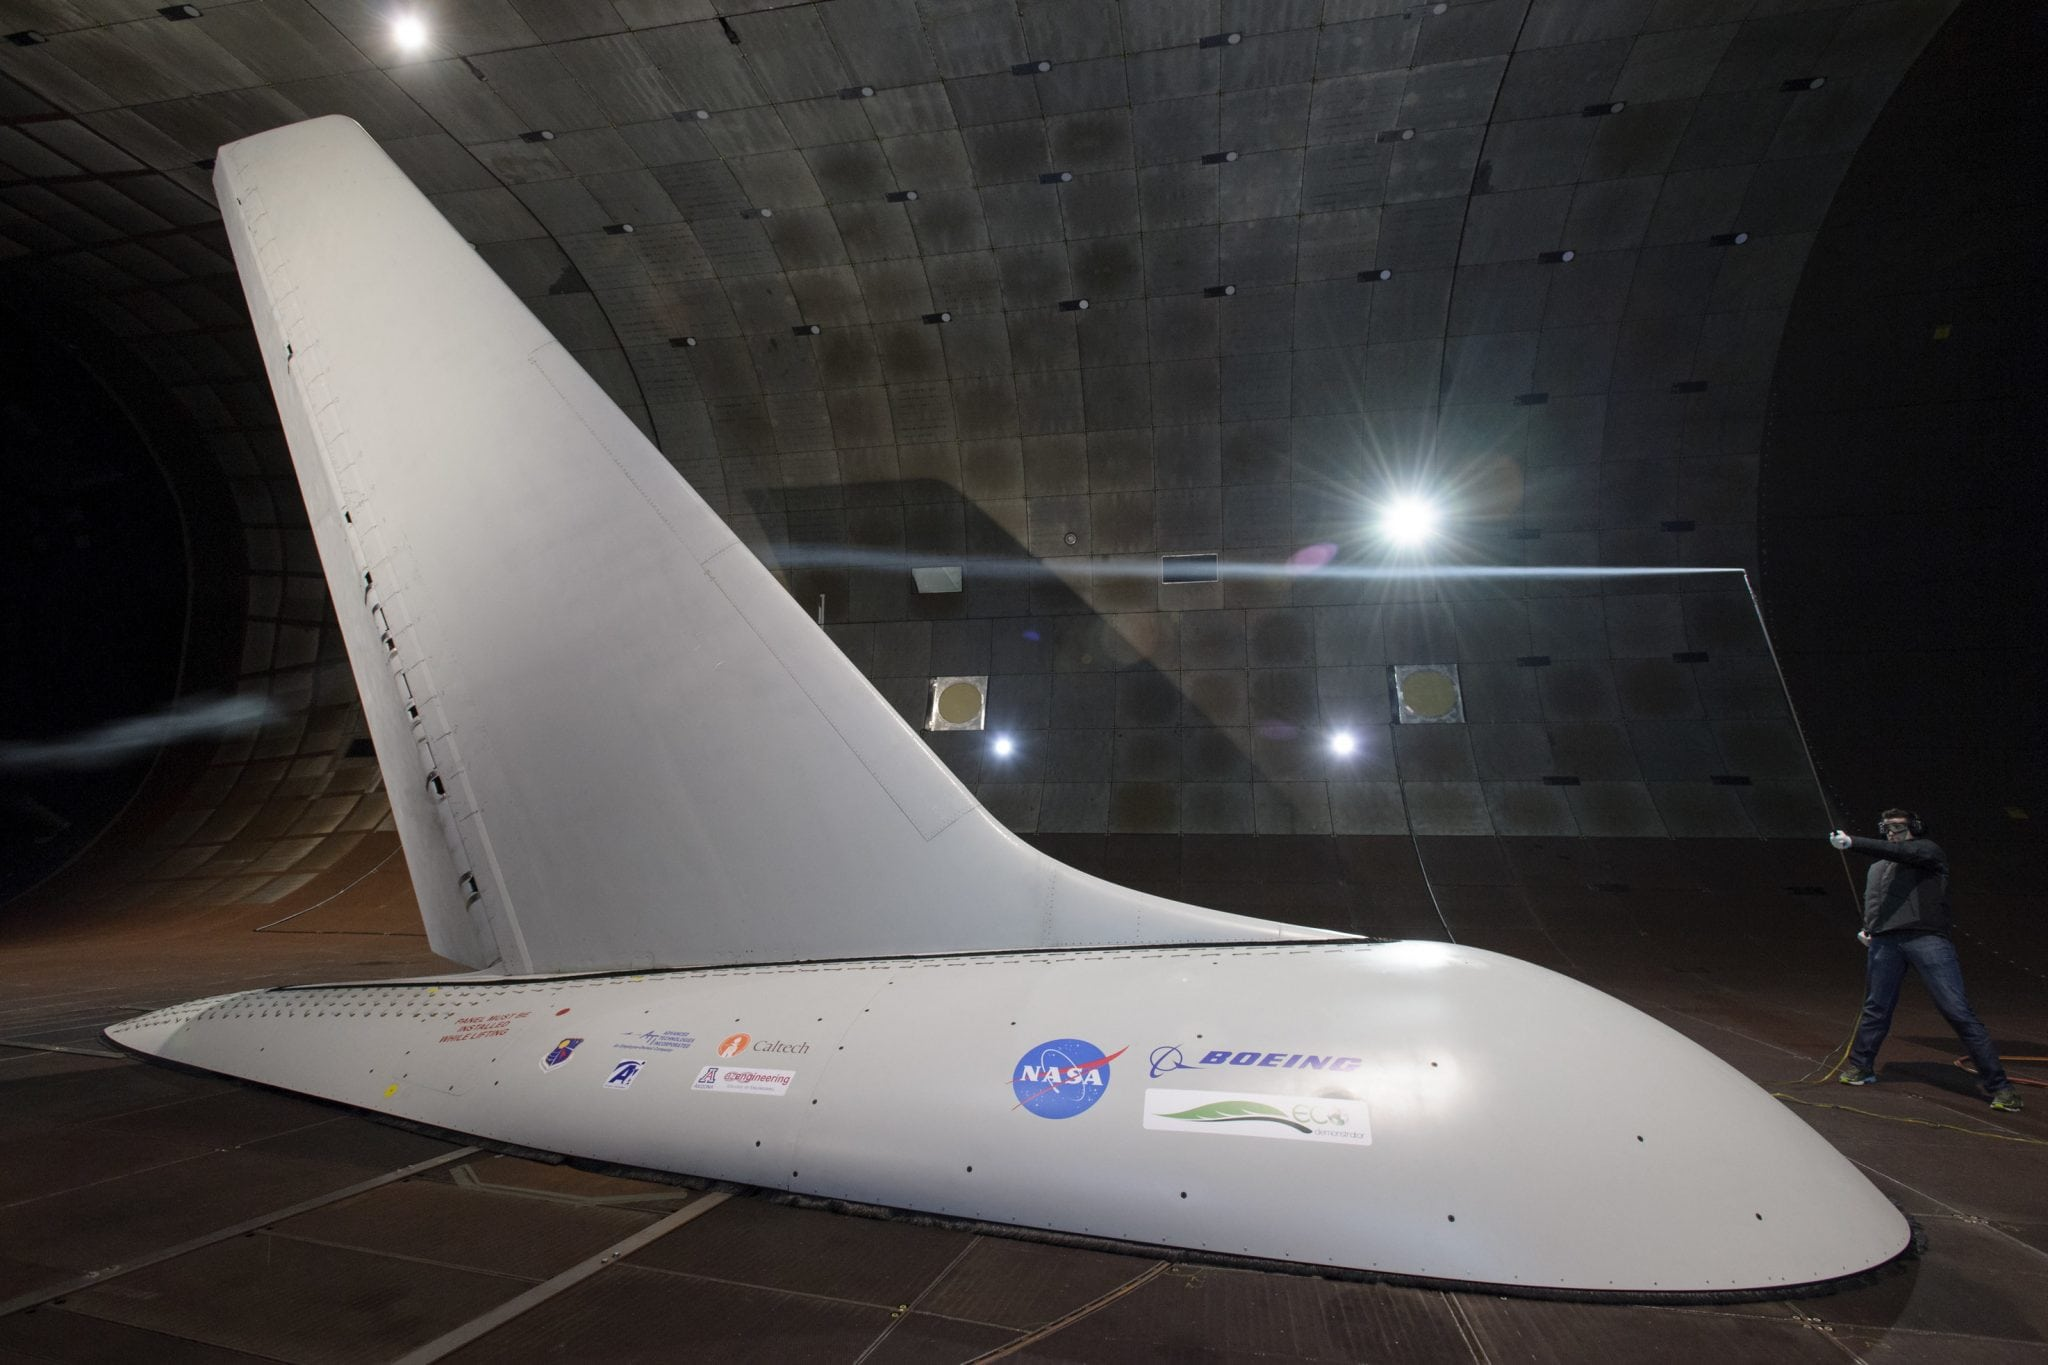 Researchers with NASA's Environmentally Responsible Aviation project coordinated wind-tunnel tests of an Active Flow Control system — tiny jets installed on a full-size aircraft vertical tail that blow air — to prove they would provide enough side force and stability that it might someday be possible to design smaller vertical tails that would reduce drag and save fuel